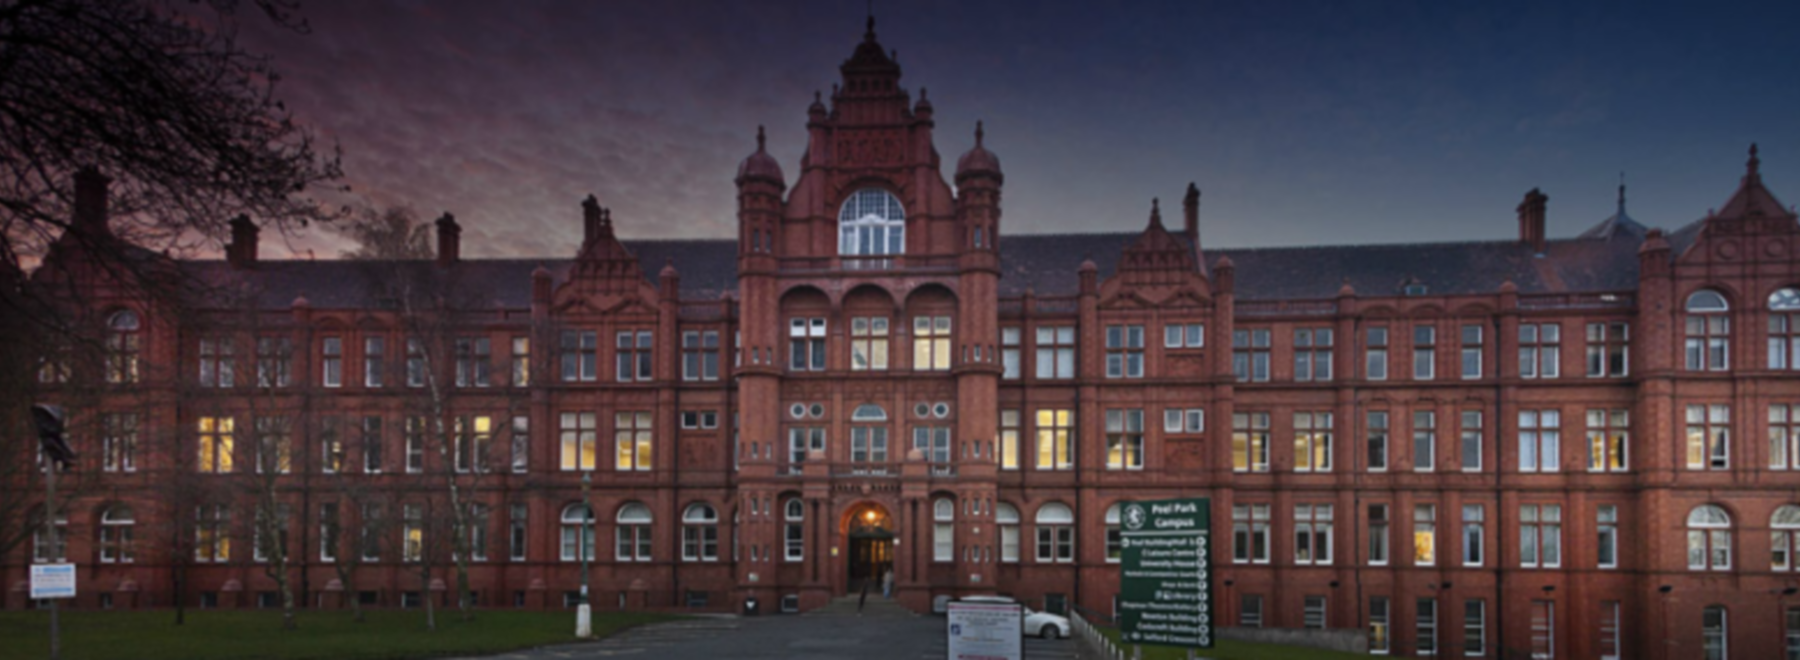 University of Salford header image